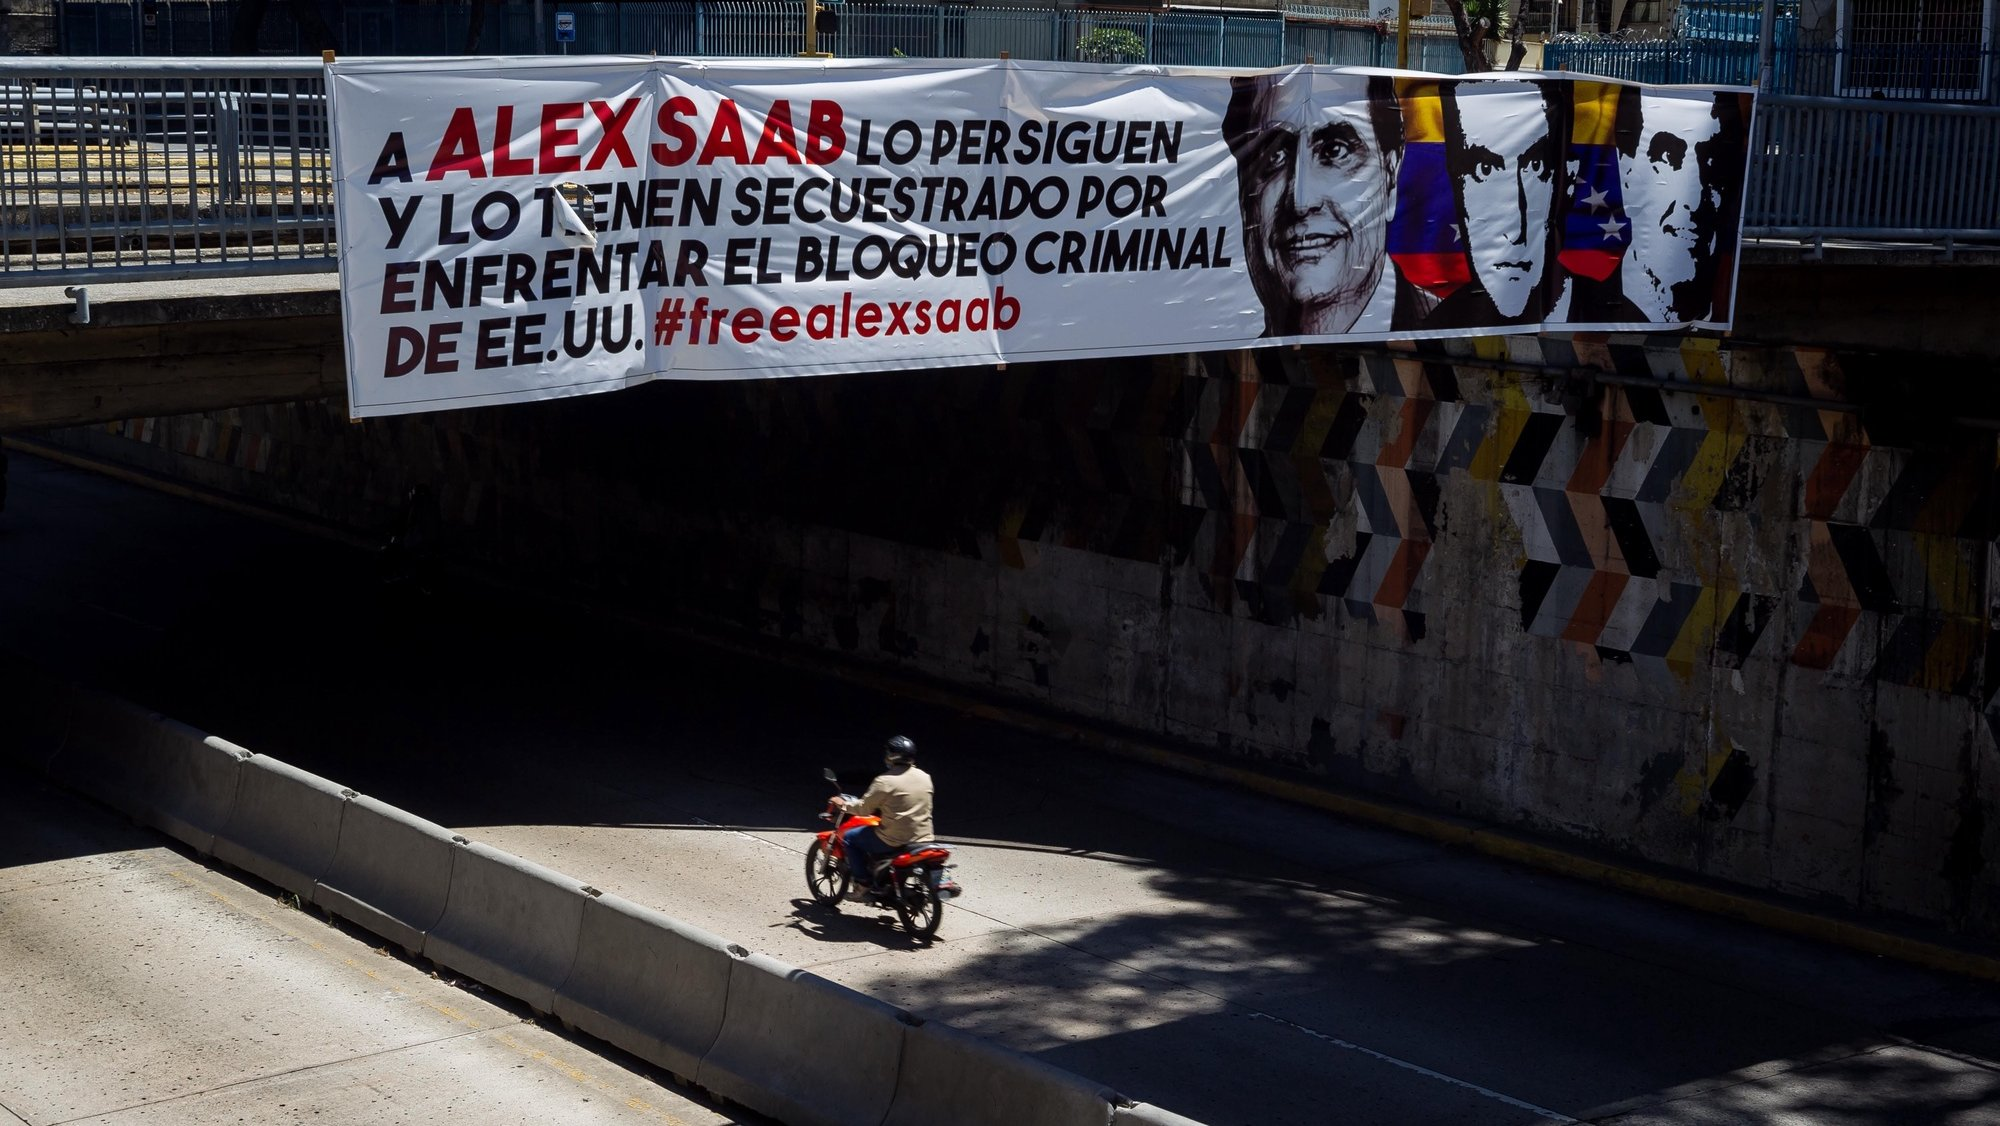 epa09024180 A banner in support of Alex Saab hangs from a bridge in Caracas, Venezuela, 19 February 2021. Venezuelan diplomat Alex Saab was arrested in Cape Verde in June 2020 at the request of the USA for alleged financial crimes, he was later placed under house arrest in January 2021.  EPA/Miguel Gutiérrez